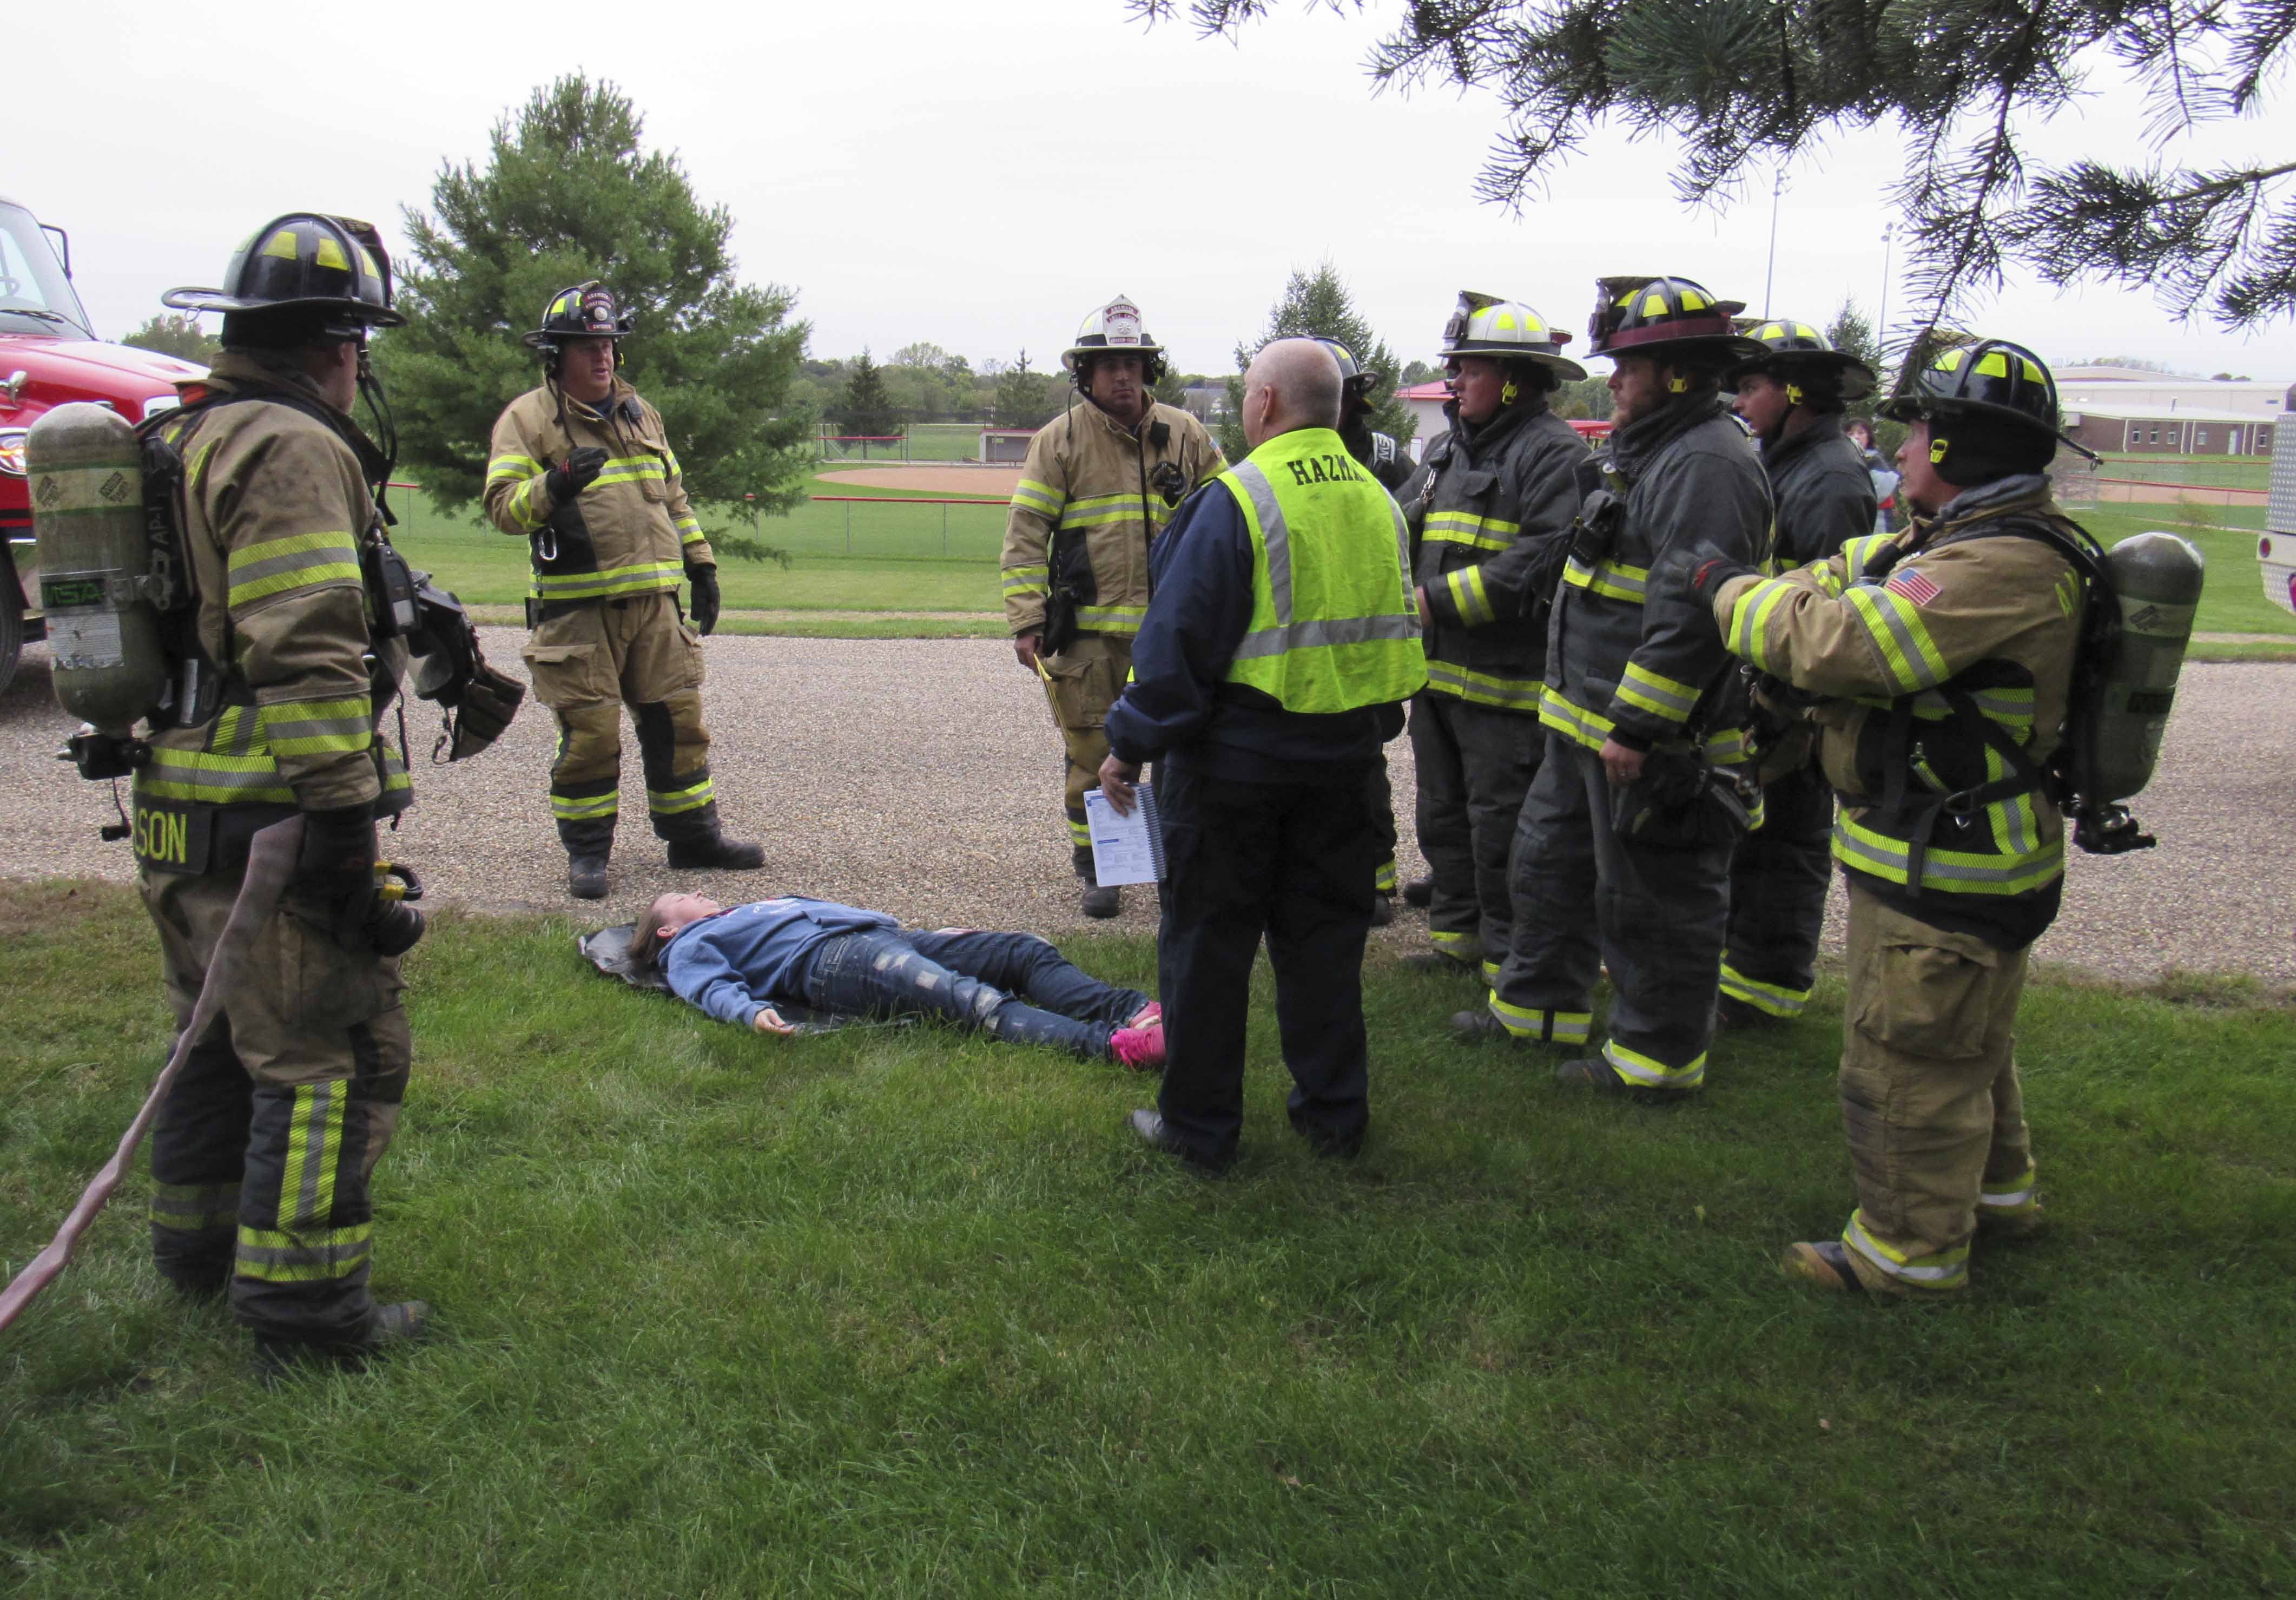 Linn County Hazmat personnel debriefed members of area fire departments as they assessed the situation involving a truck driver (Lisa Oswald) who fell victim to the chemical spill. Those agencies who took part in the hazmat training included: MFD, MPD, Monticello Ambulance, Emergency Management, AFD, Anamosa EMS, JRMC, Onslow Fire, Midland EMS, Jones County Dispatch, Linn County Hazmat, and medical examiners Dr. Michael Weston and Victoria Weston.